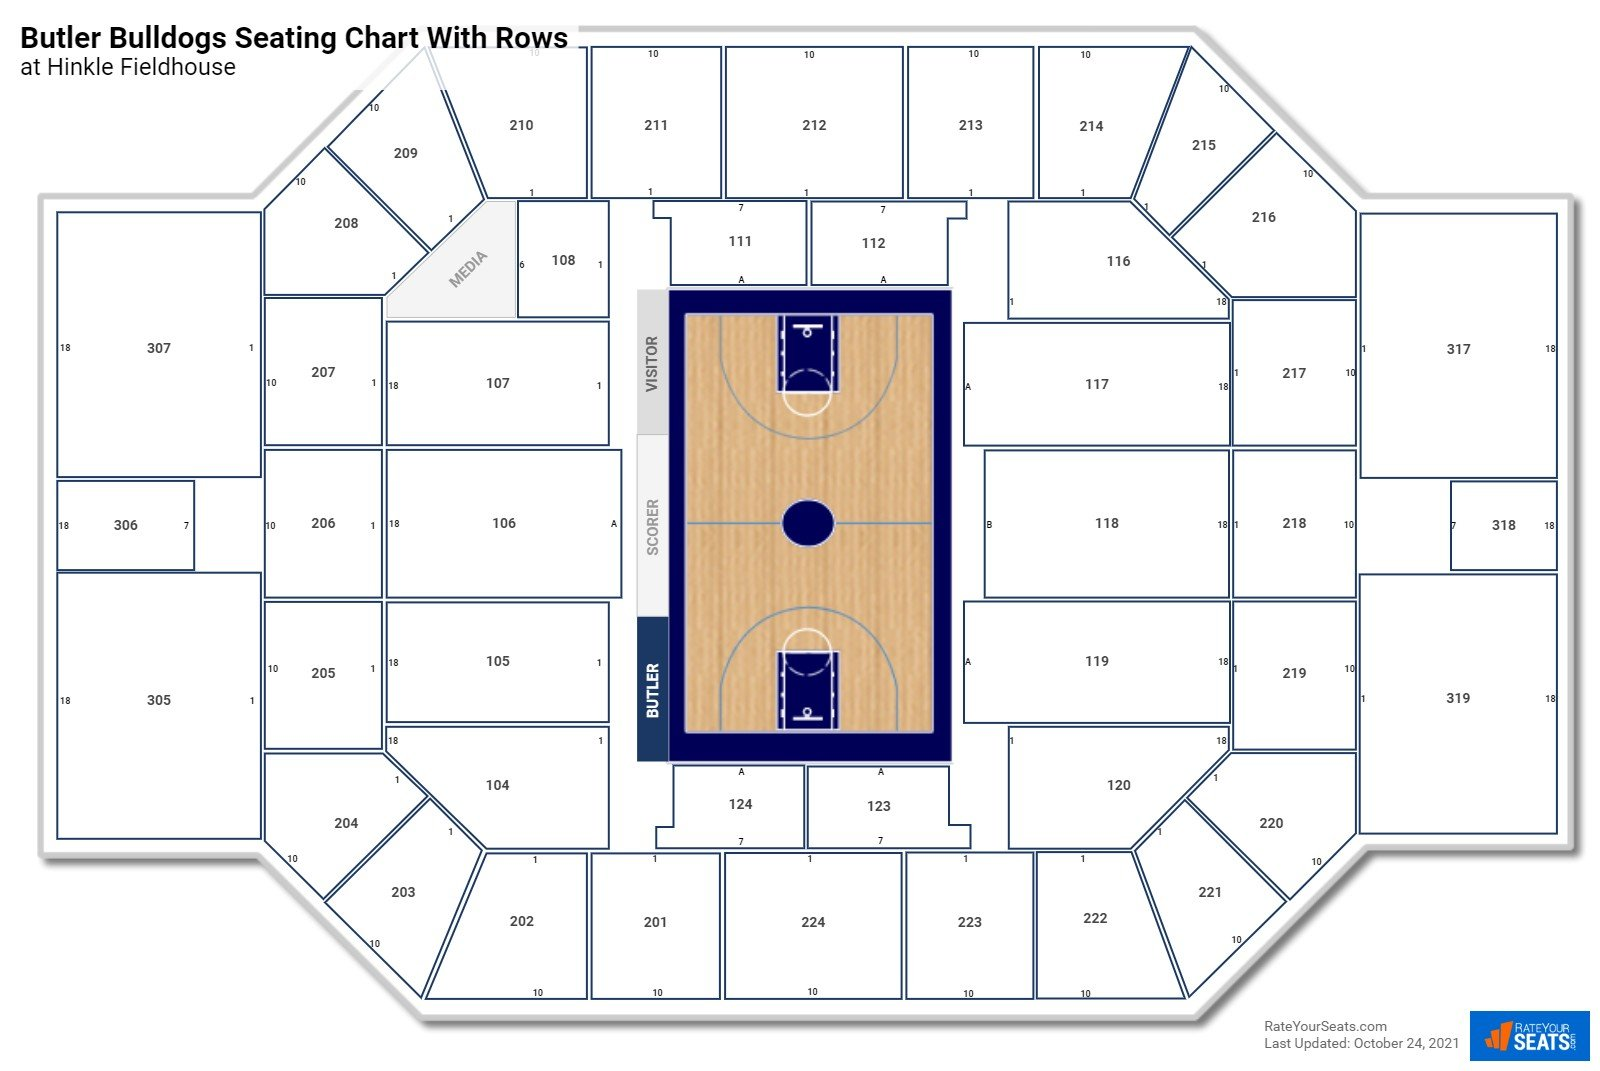 Hinkle Fieldhouse seating chart with rows